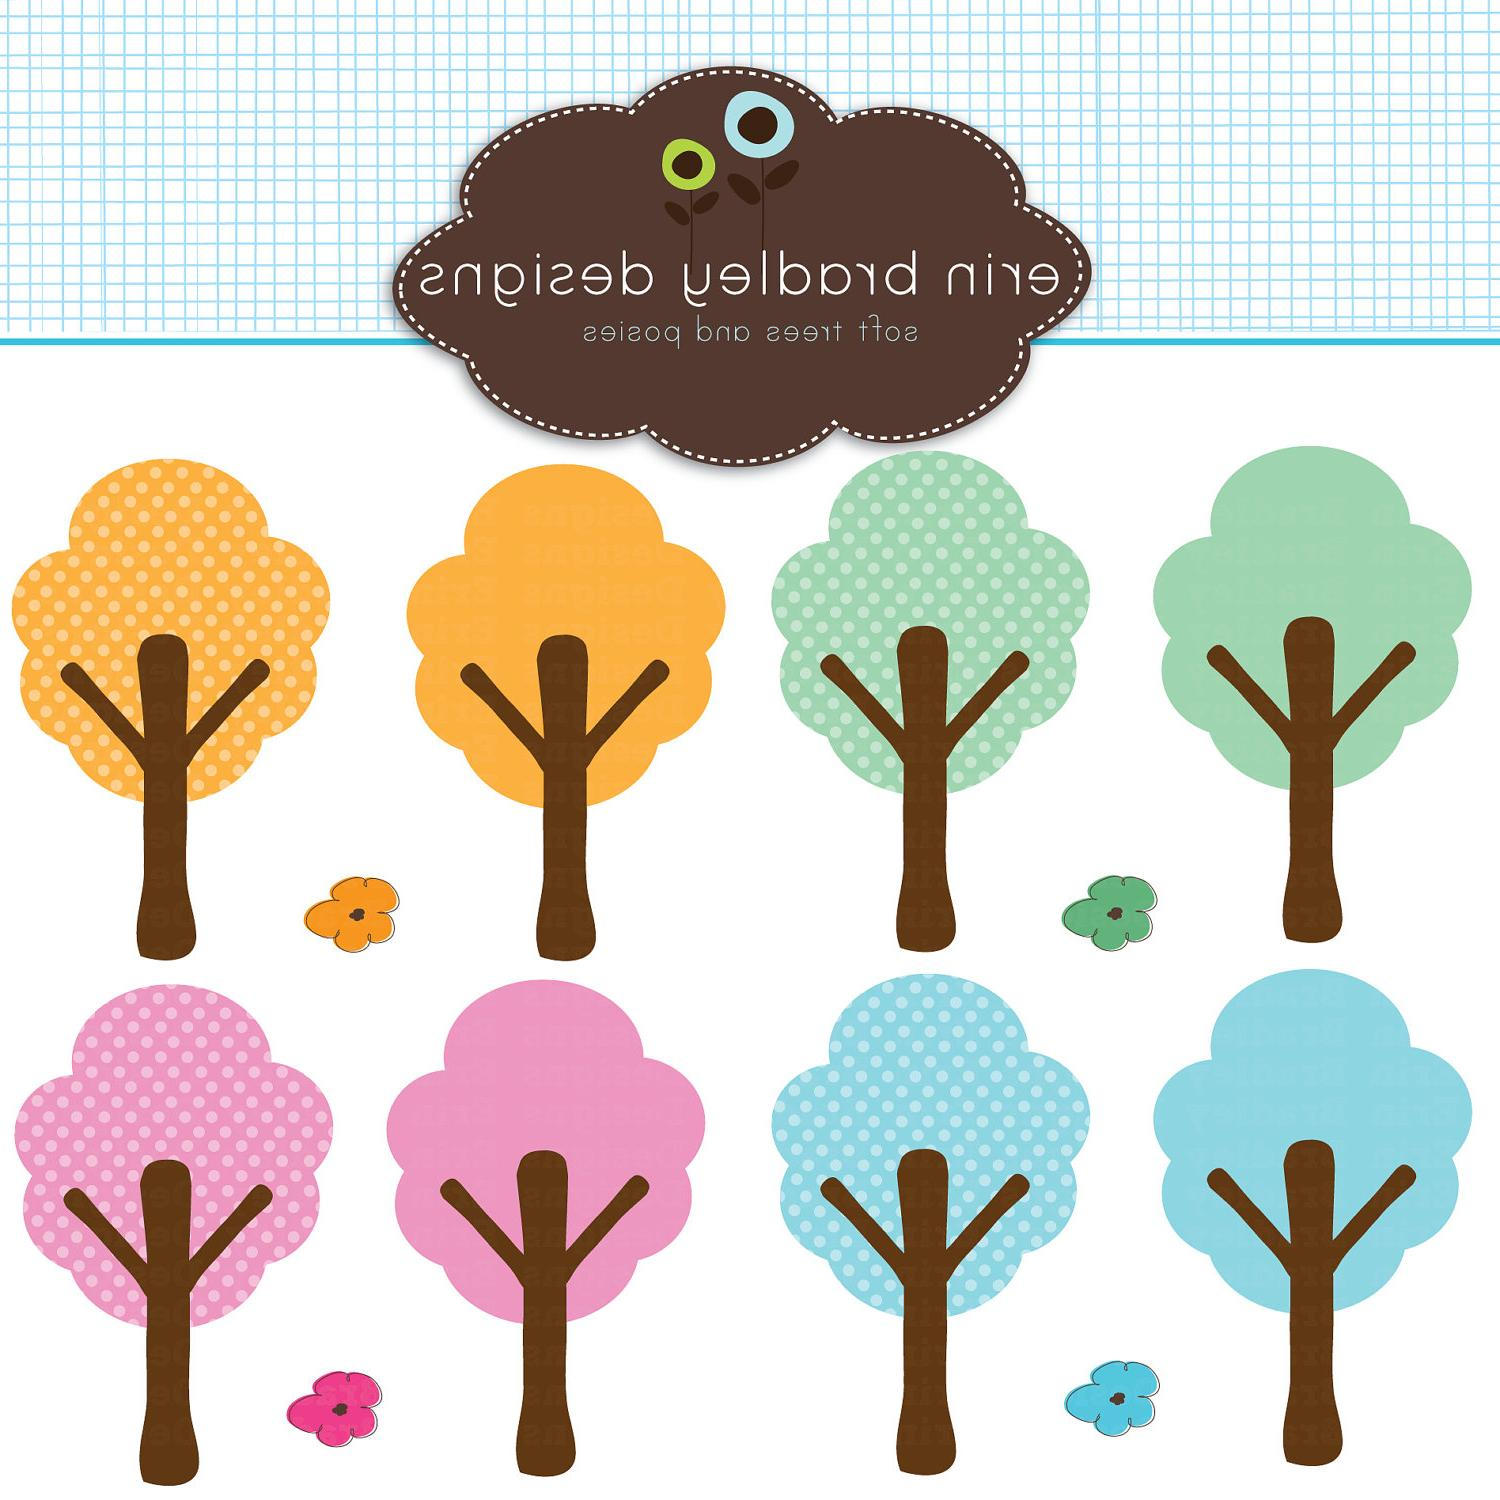 Teal wedding address label clipart for Address label clip art